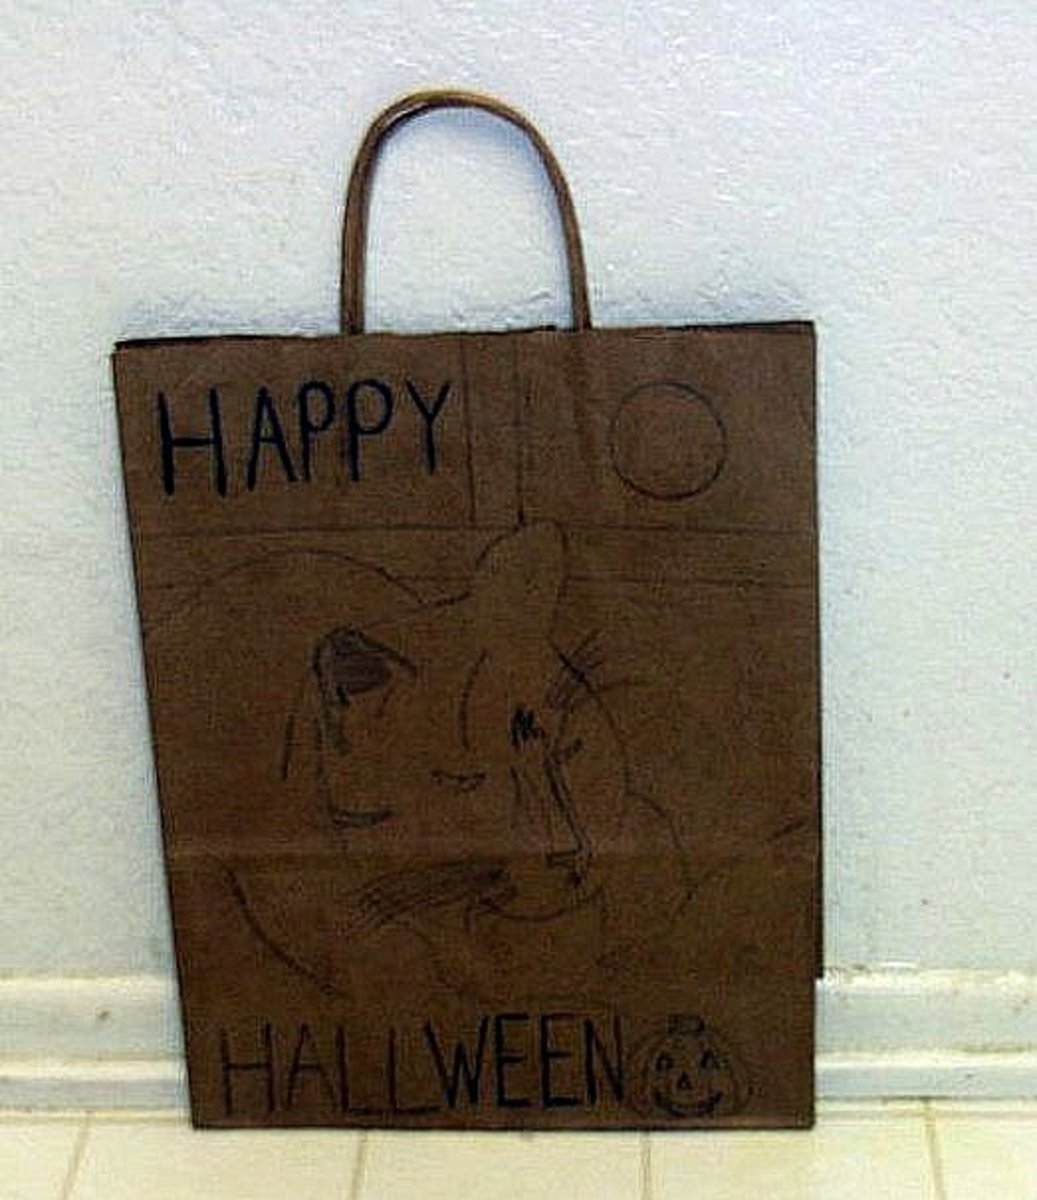 The picture of Bobby was drawn on a brown paper bag.